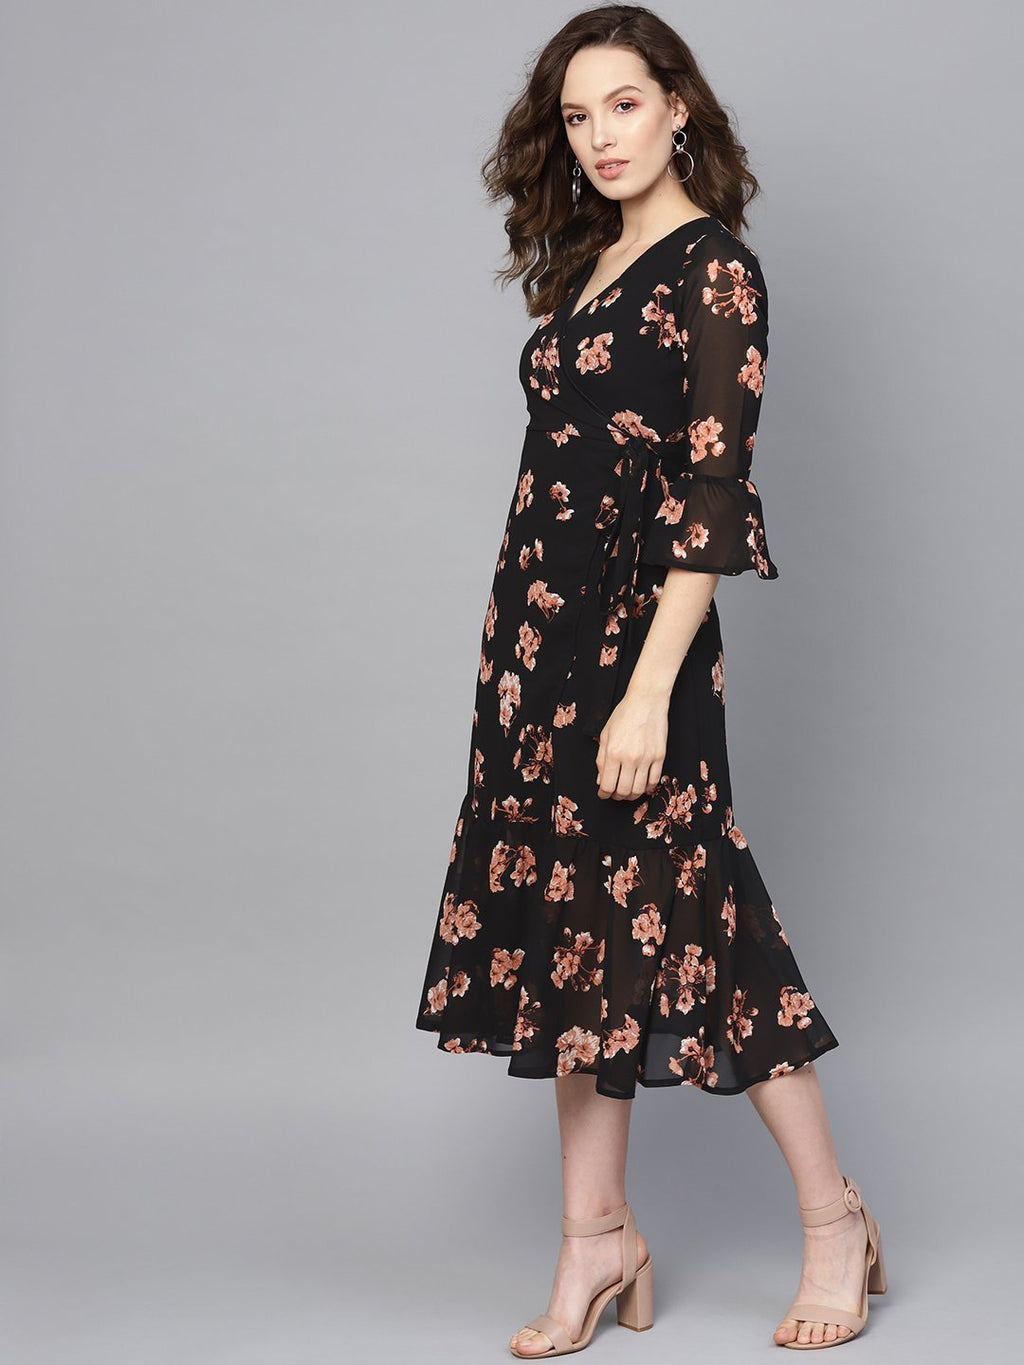 Black Floral Wrap Tie Dress